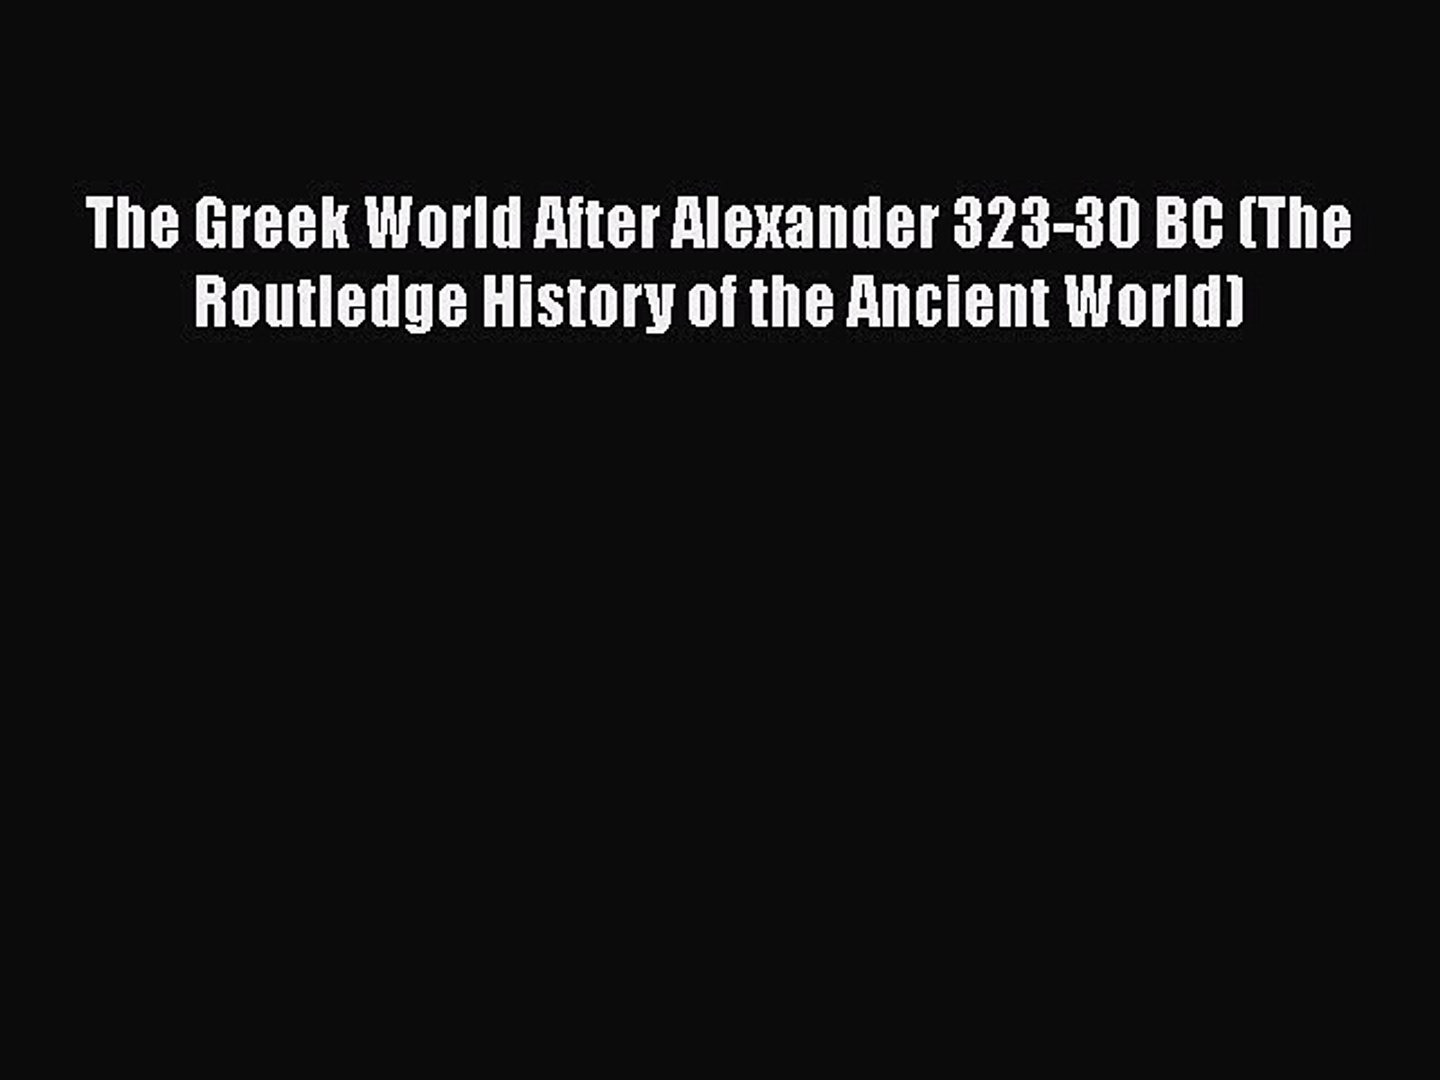 [Read book] The Greek World After Alexander 323-30 BC (The Routledge History of the Ancient